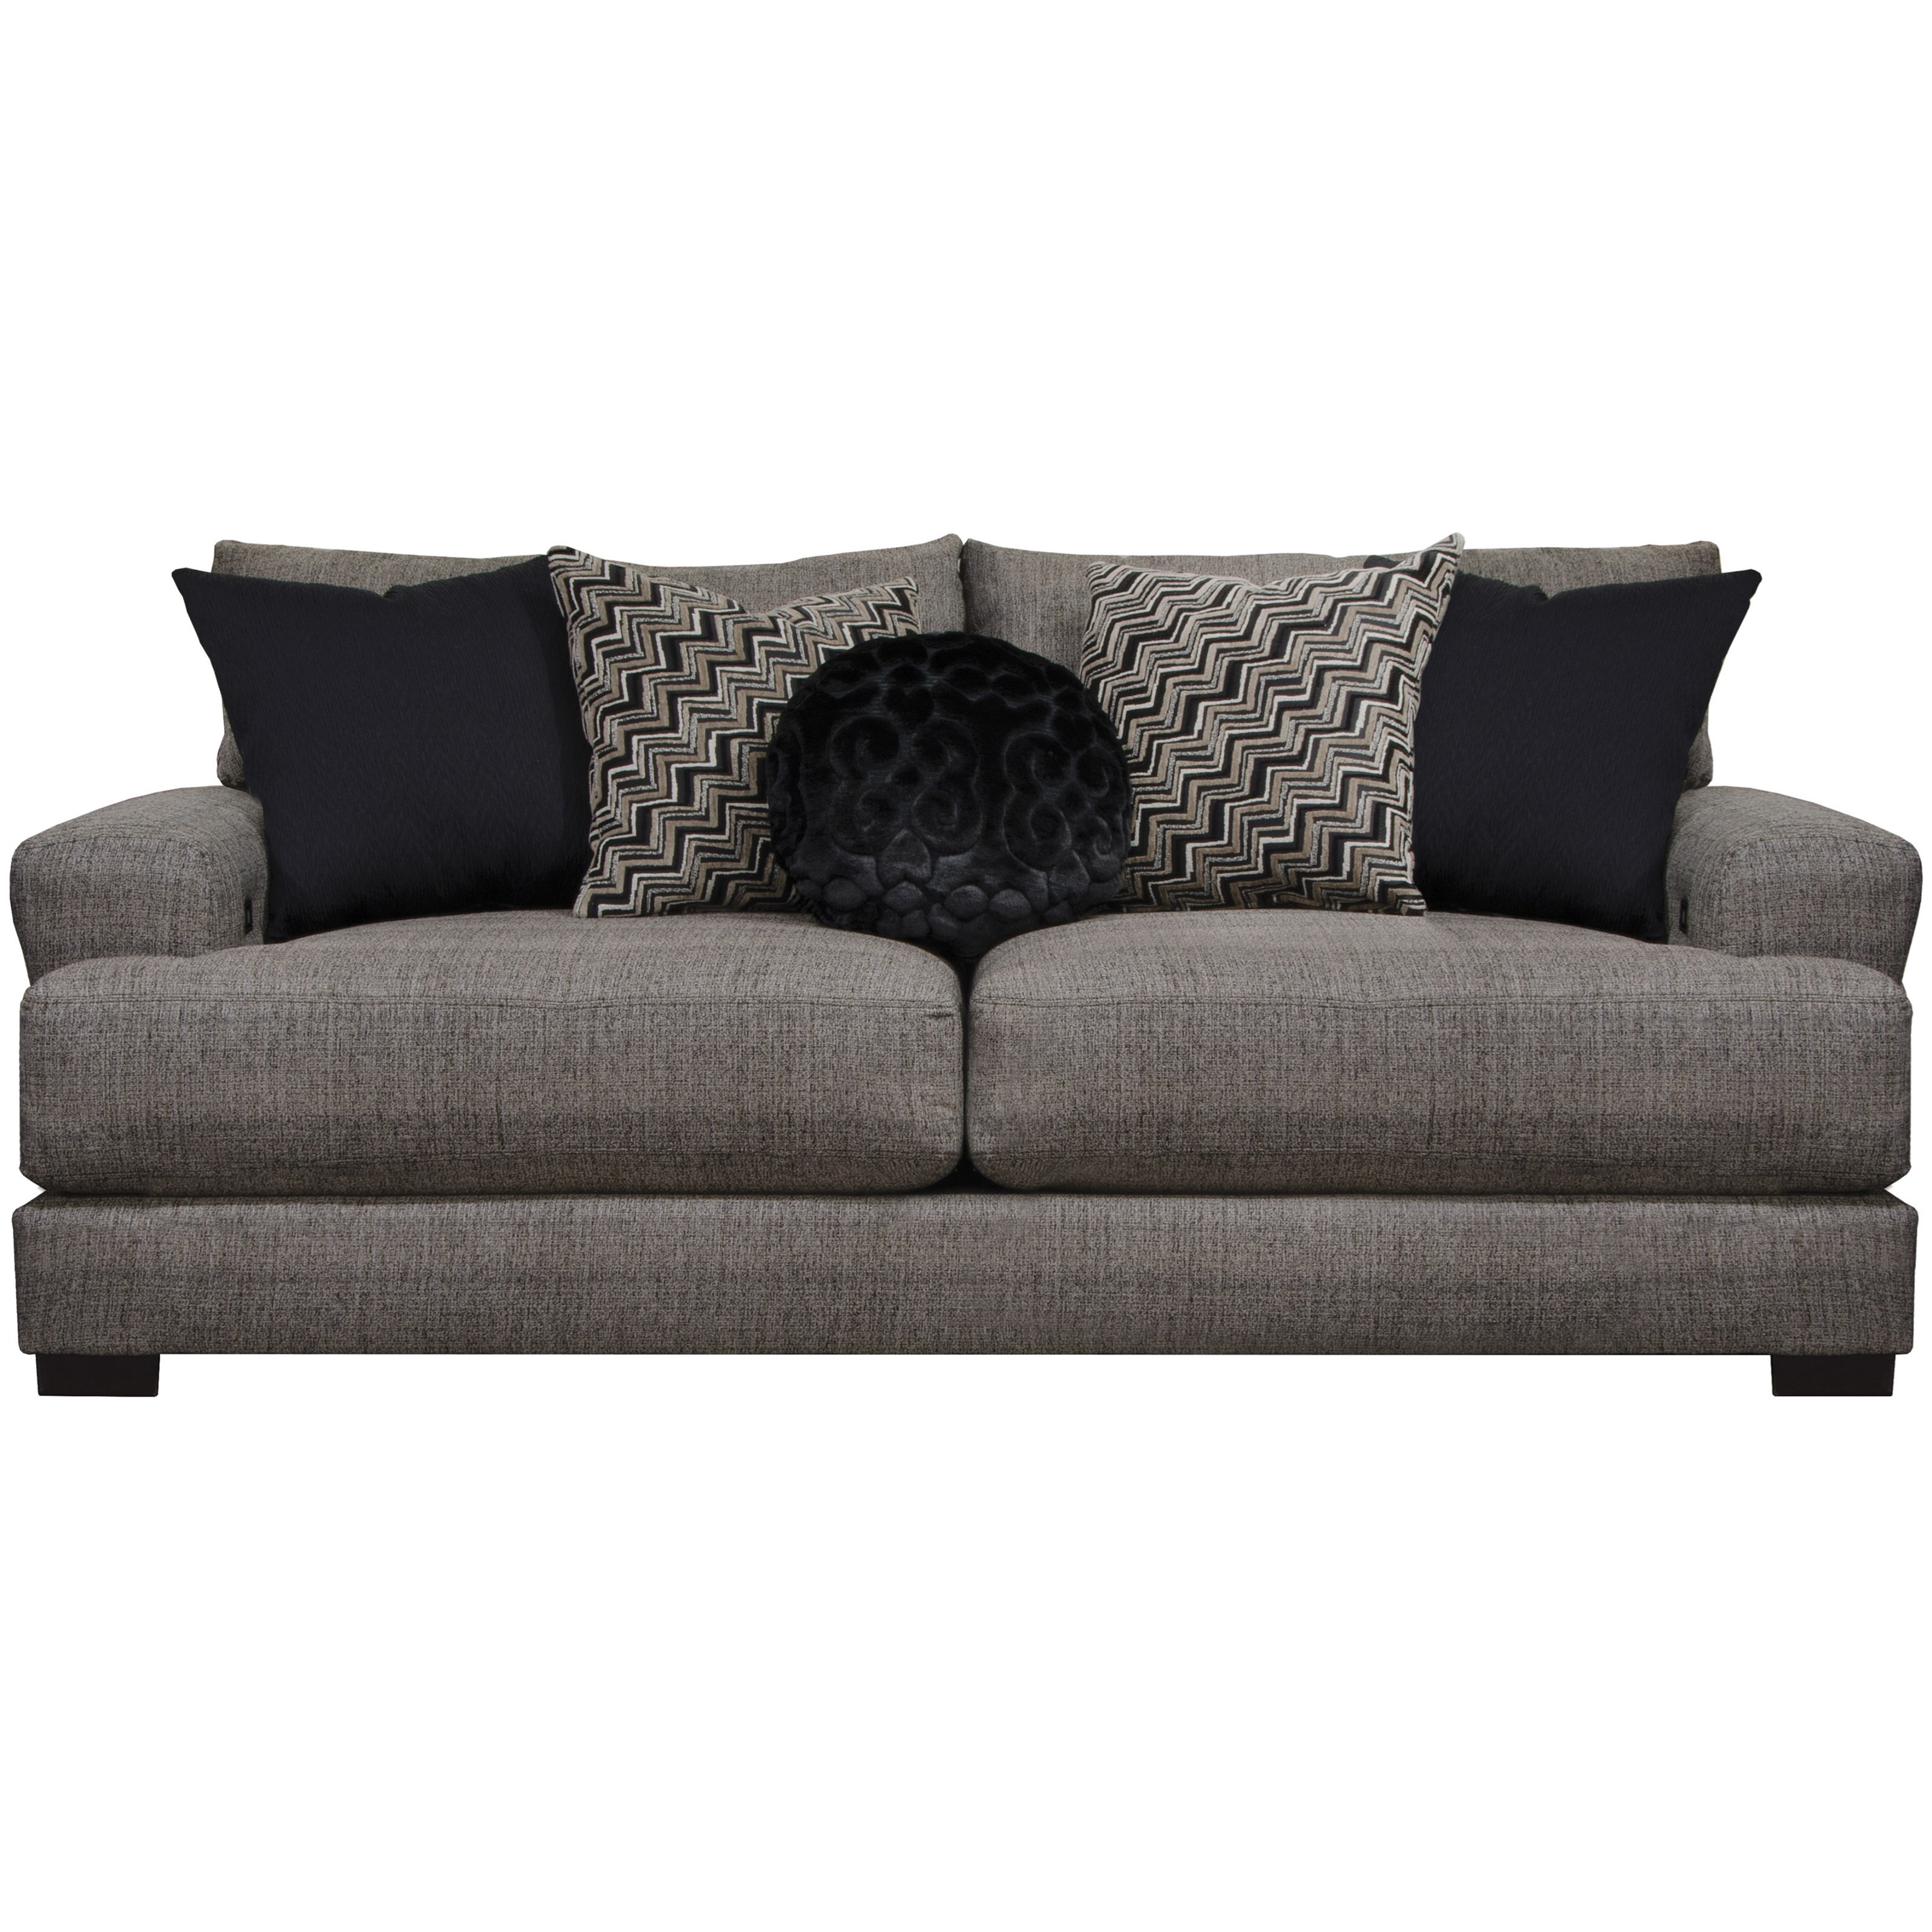 Ava Sofa by Jackson Furniture at Virginia Furniture Market